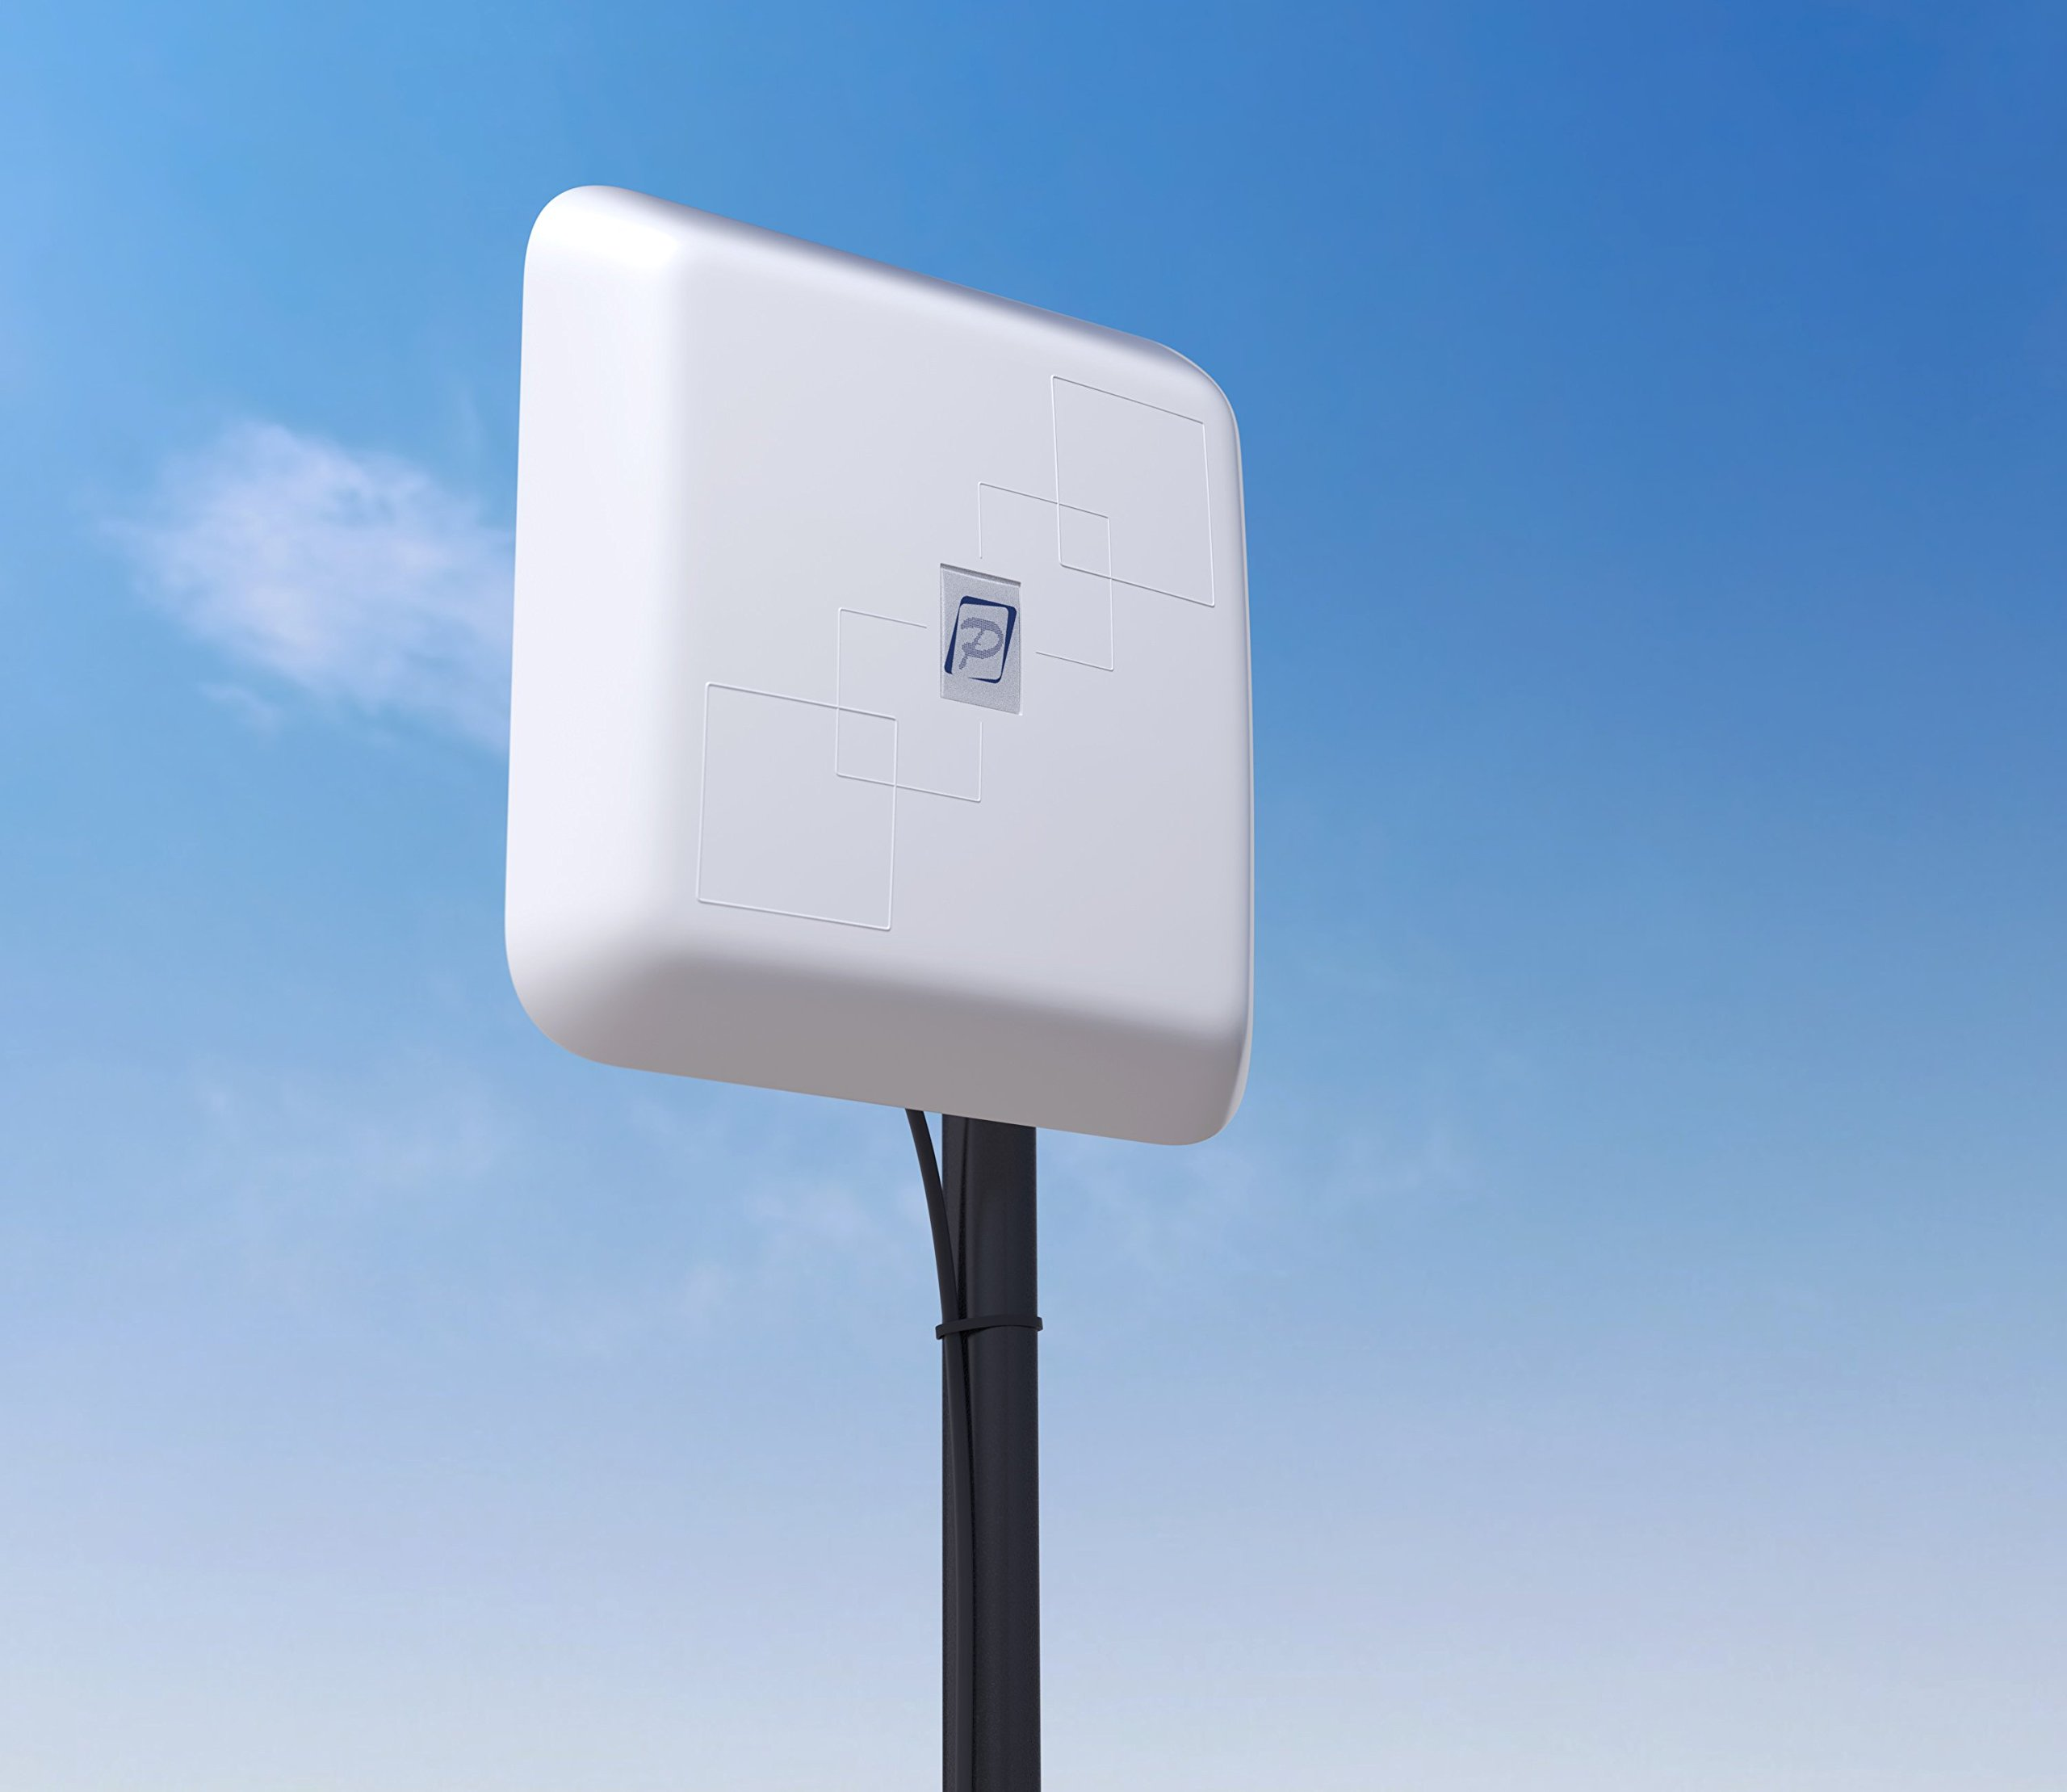 Antenna Outdoor 3G/4G BAS-2325 Connect Street Direct for USB modems and WiFi routers